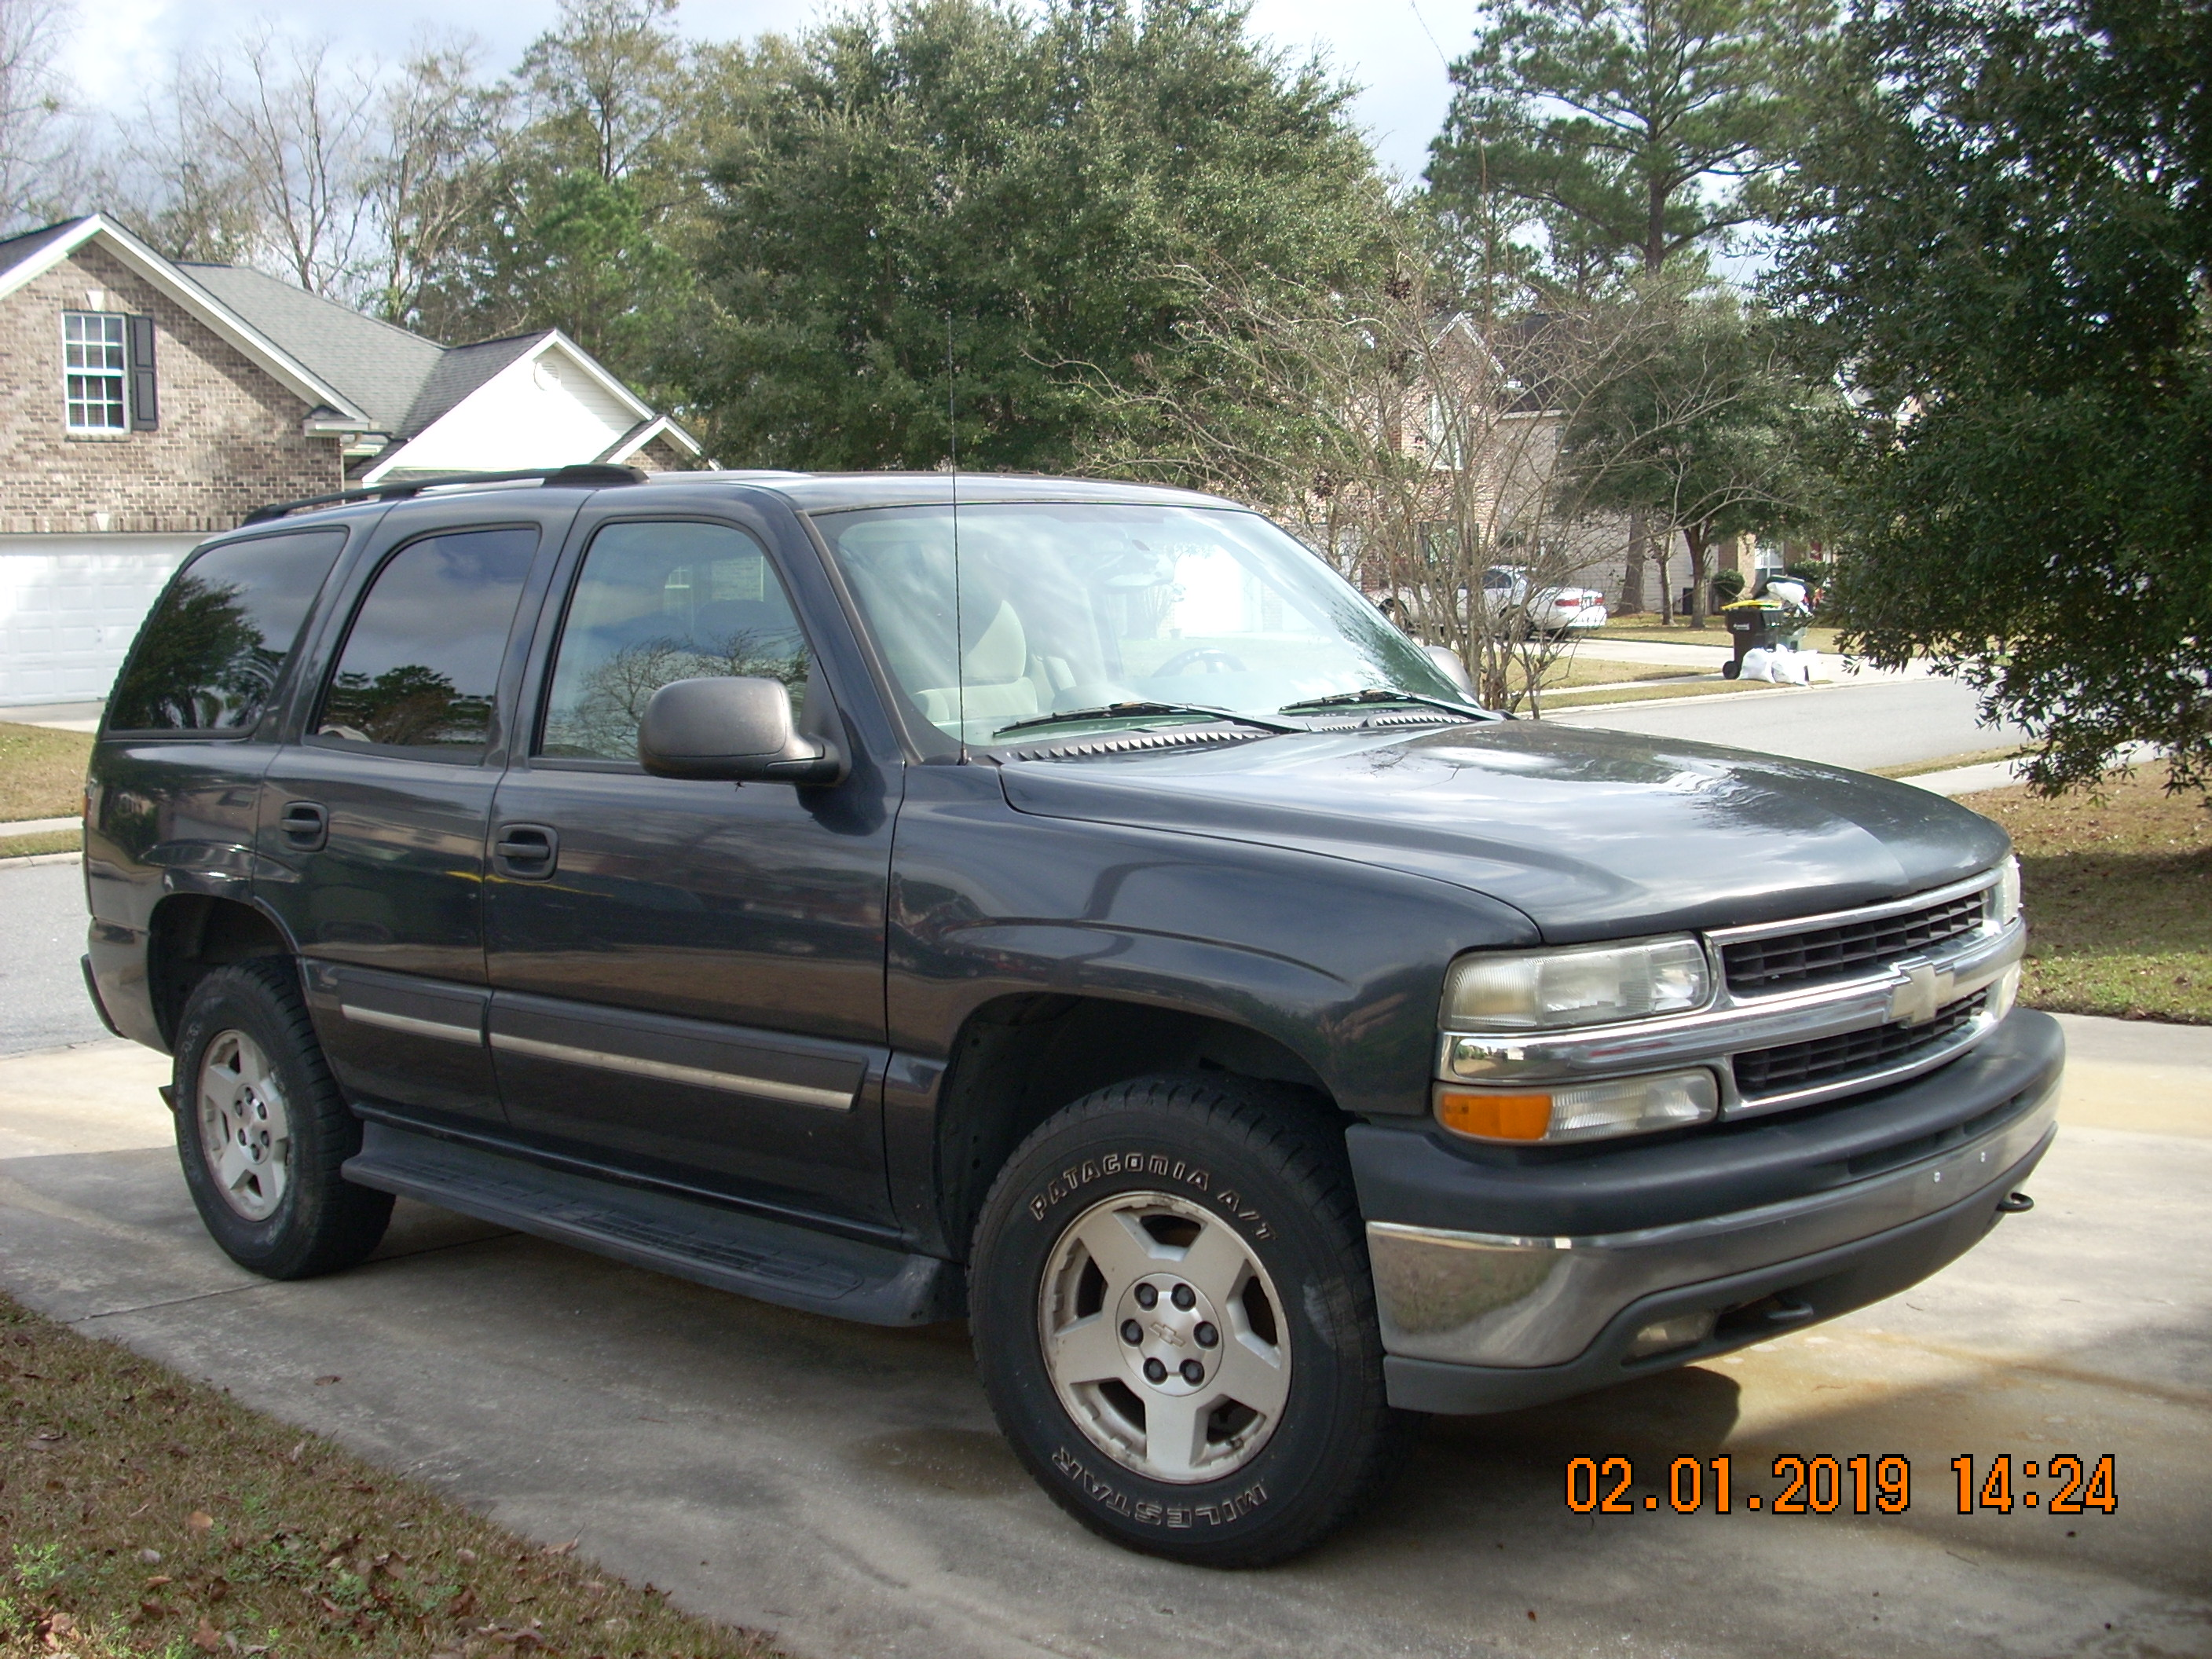 For Sale - 2004 Chevy Tahoe